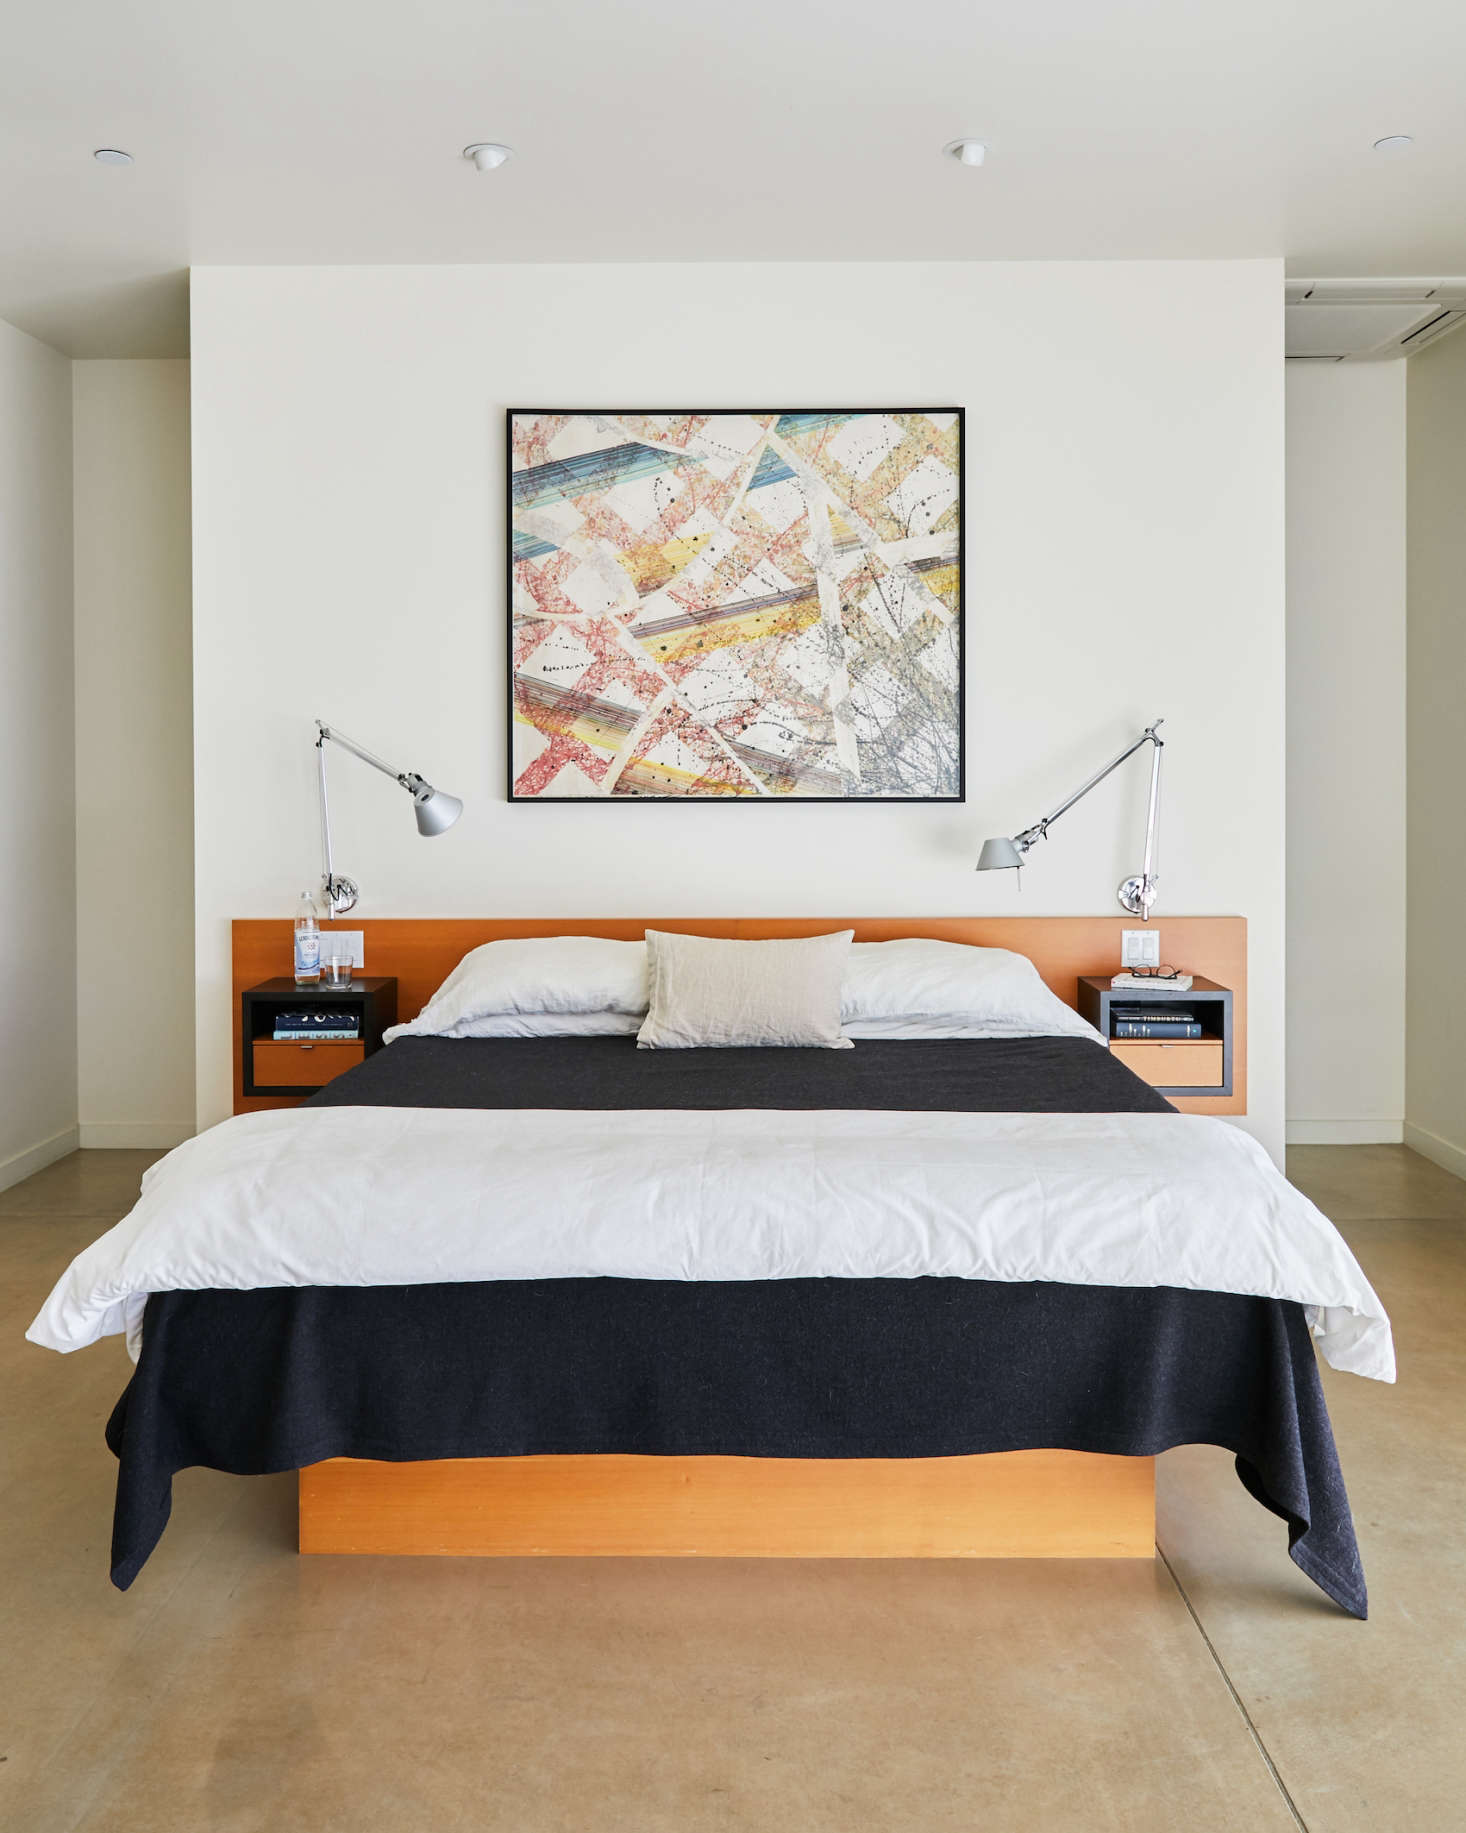 In the master bedroom, Anding designed the custom bed with integrated nightstands. The painting is by Stephen Singer, and lights flanking the bed are Tolomeo Classic Wall Lamps.